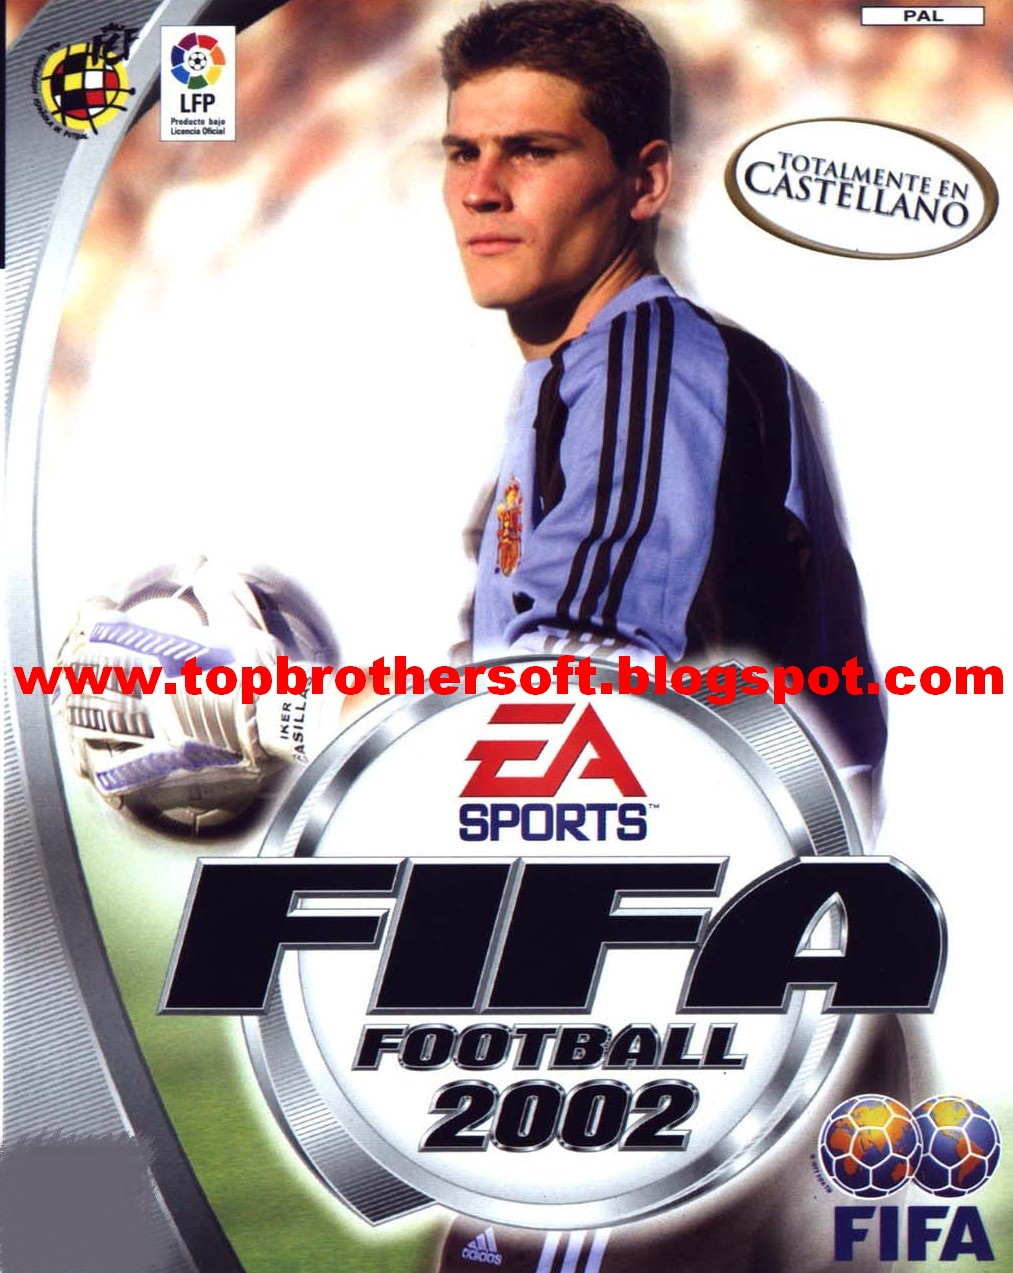 fifa football 2002 game free download full version for pc for